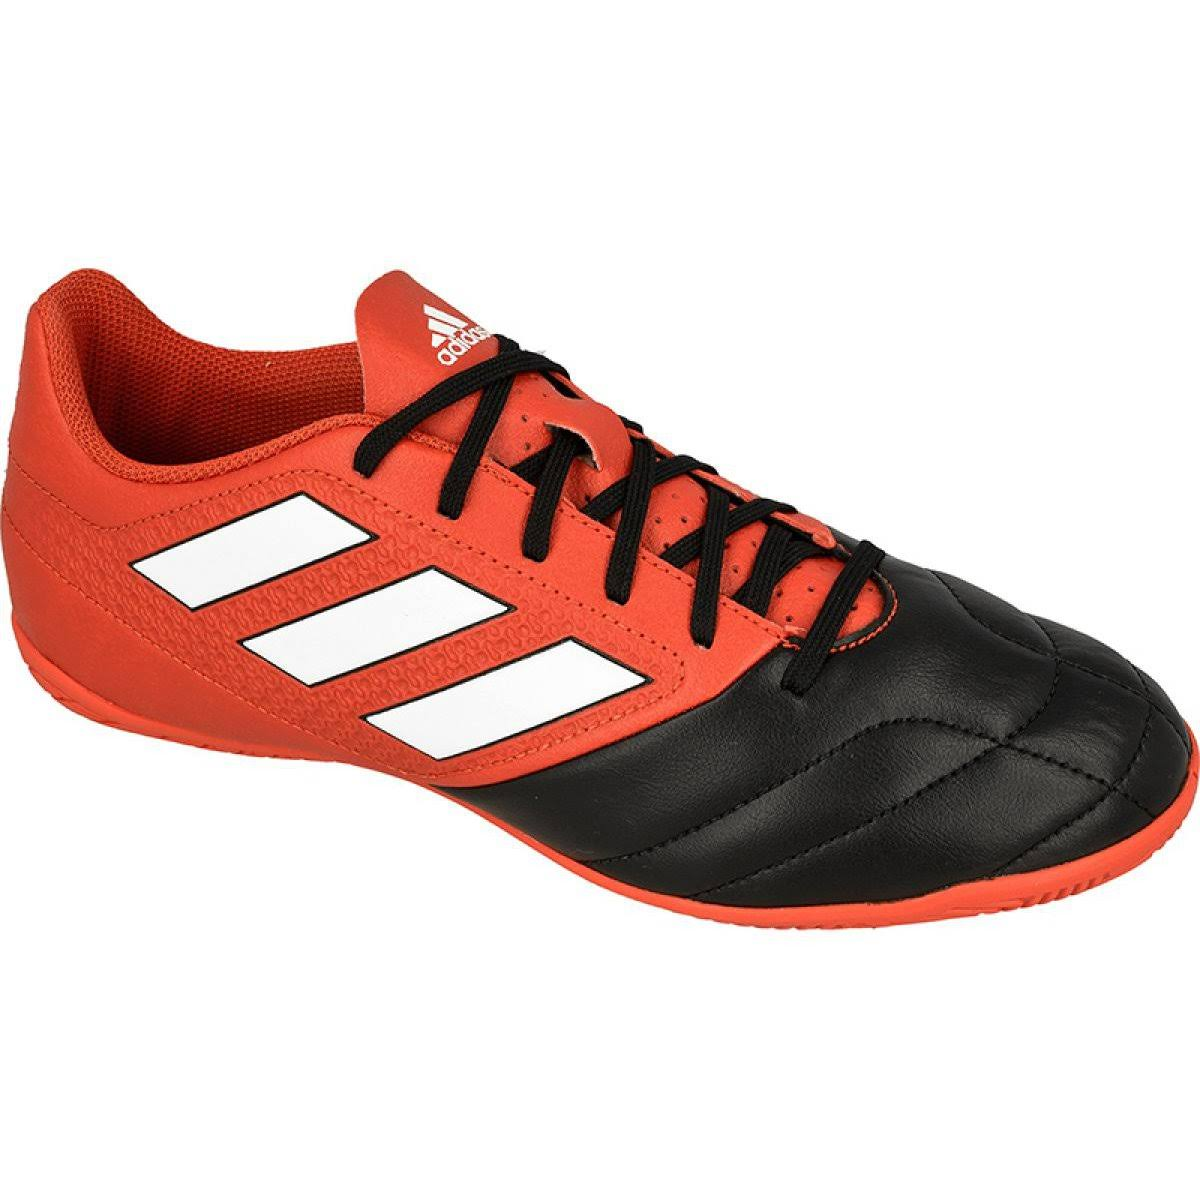 Adidas Ace 17.4 in Football Boots - Red/Black